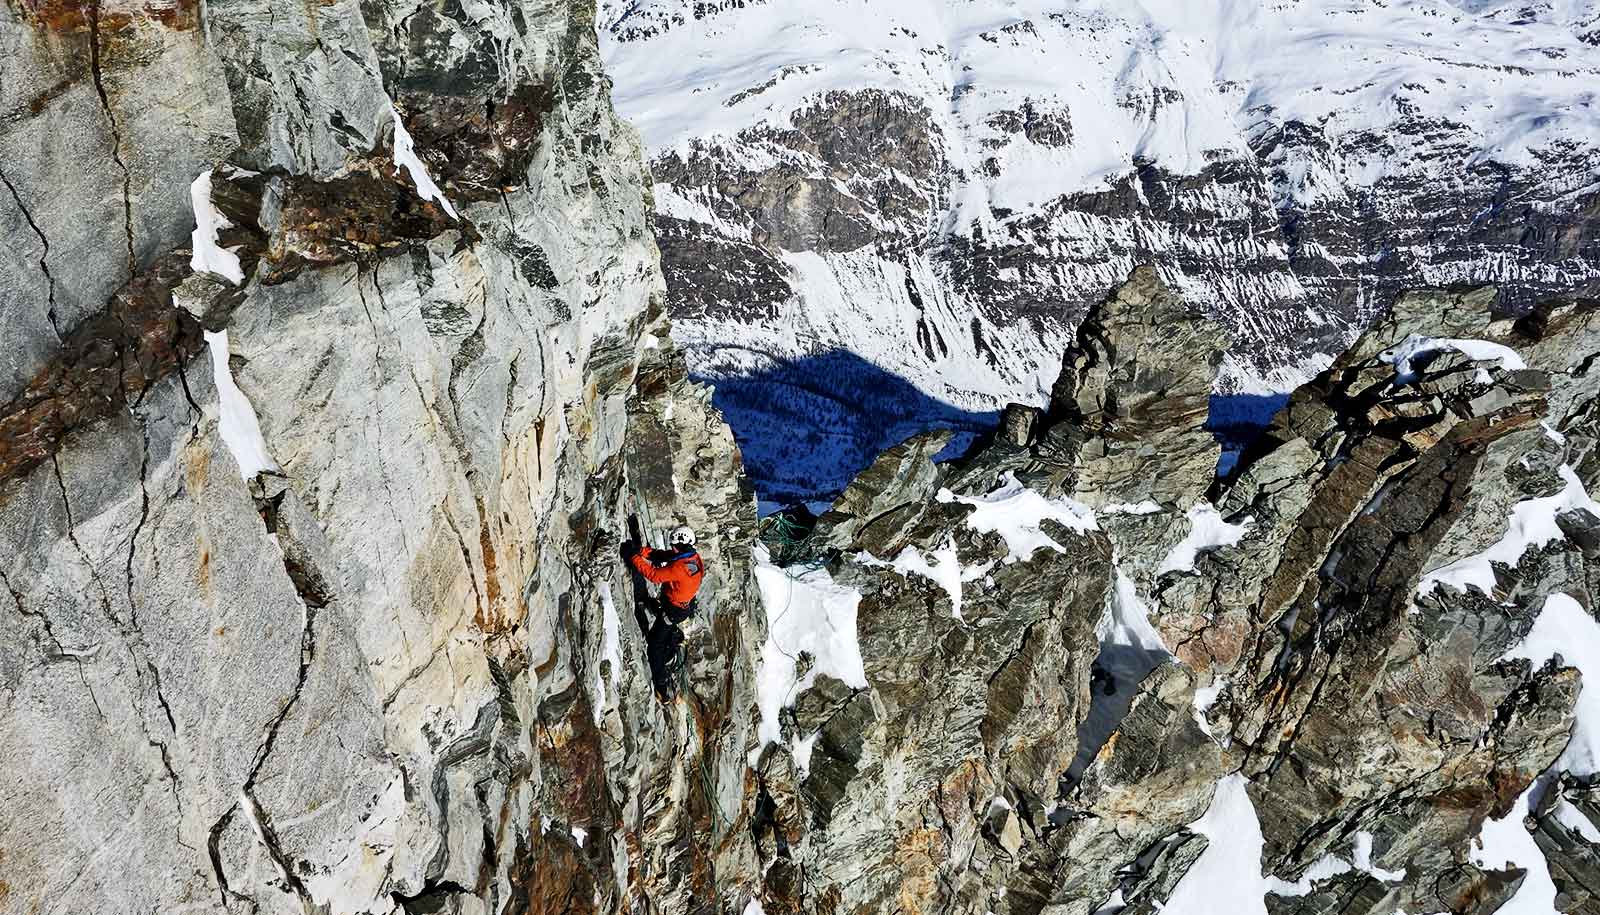 Jan Beutel climbs the massive mountain in a red jacket and safety gear, his body tiny against the scope of the Matterhorn